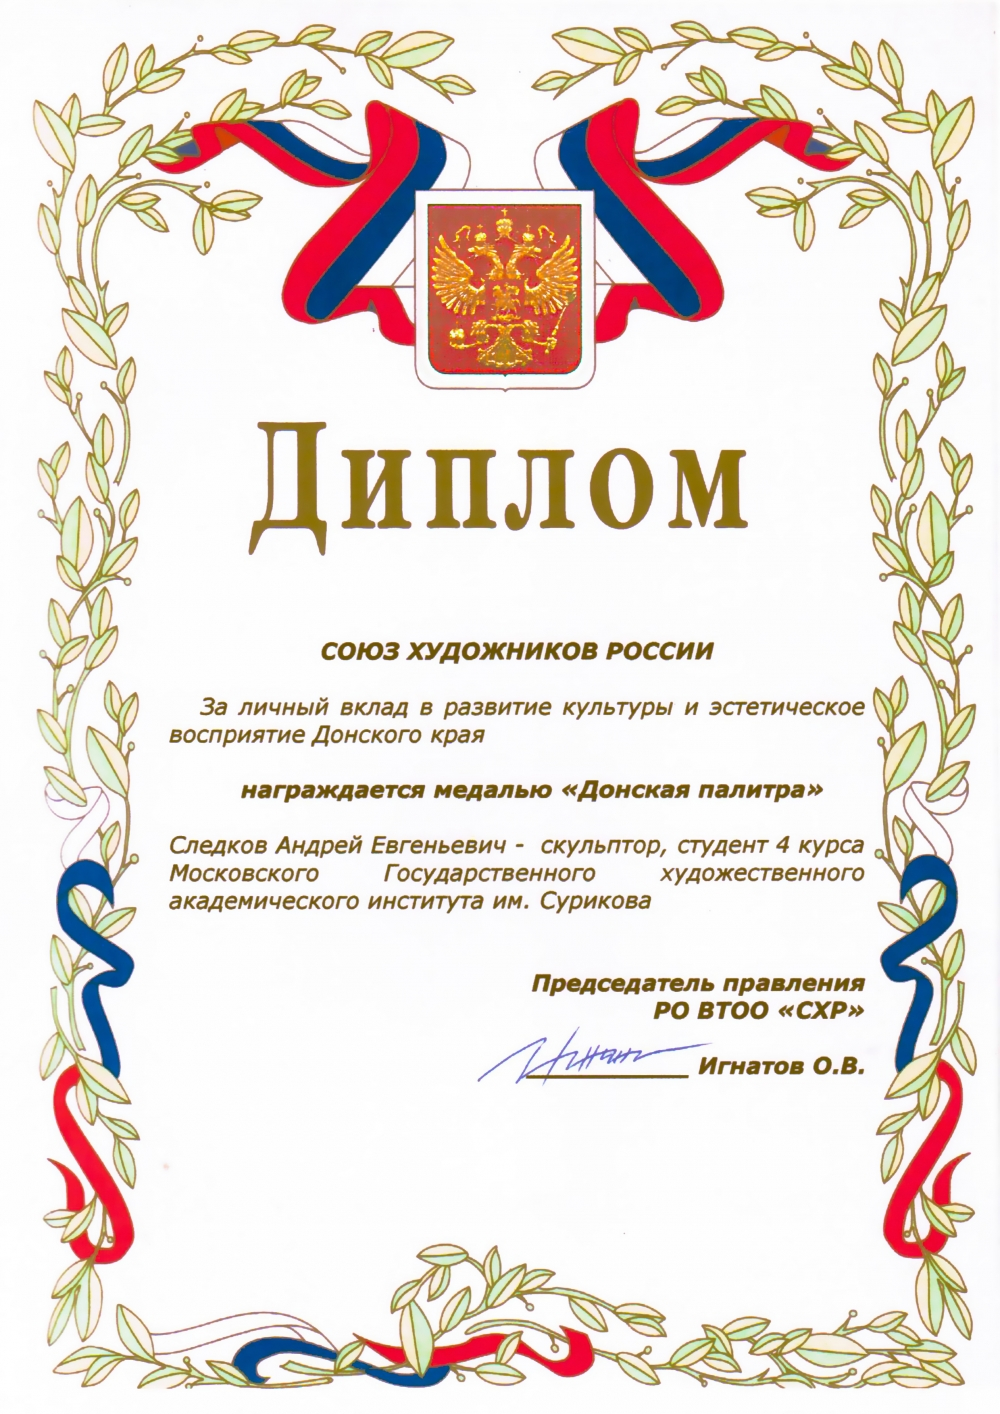 The diploma and medal